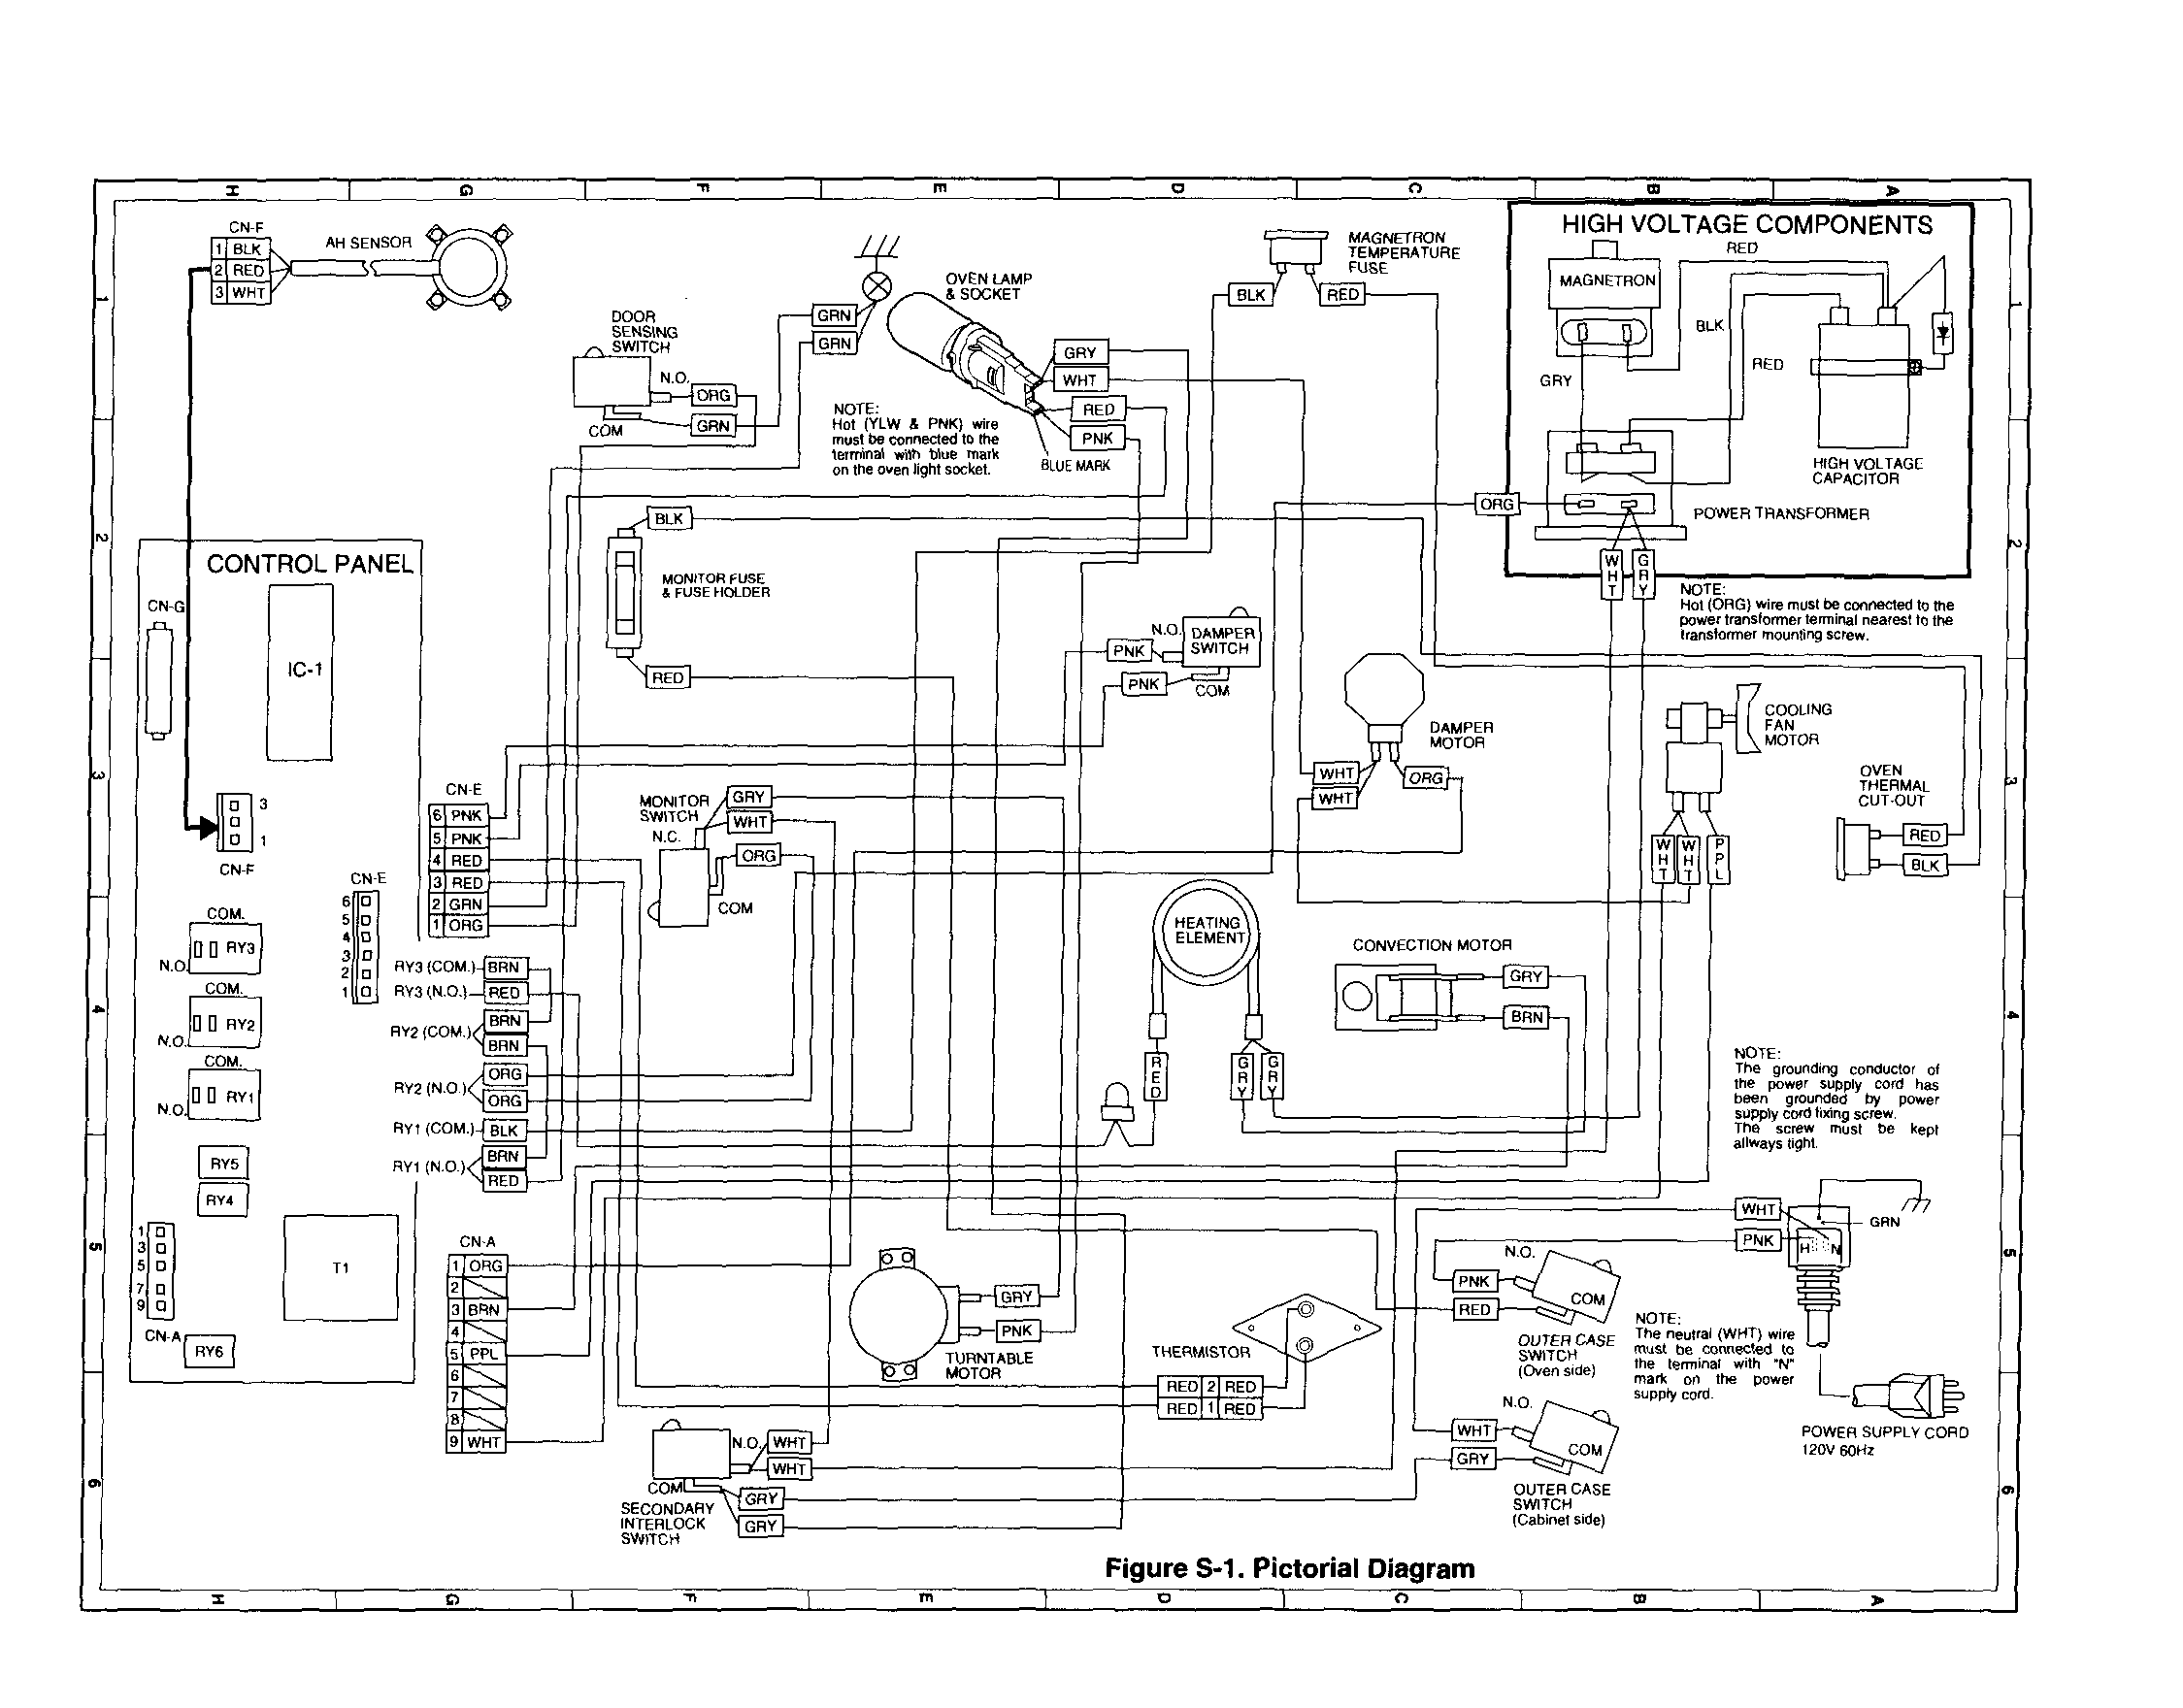 Vs 7482 Wiring Diagram Diagram And Parts List For Sharp